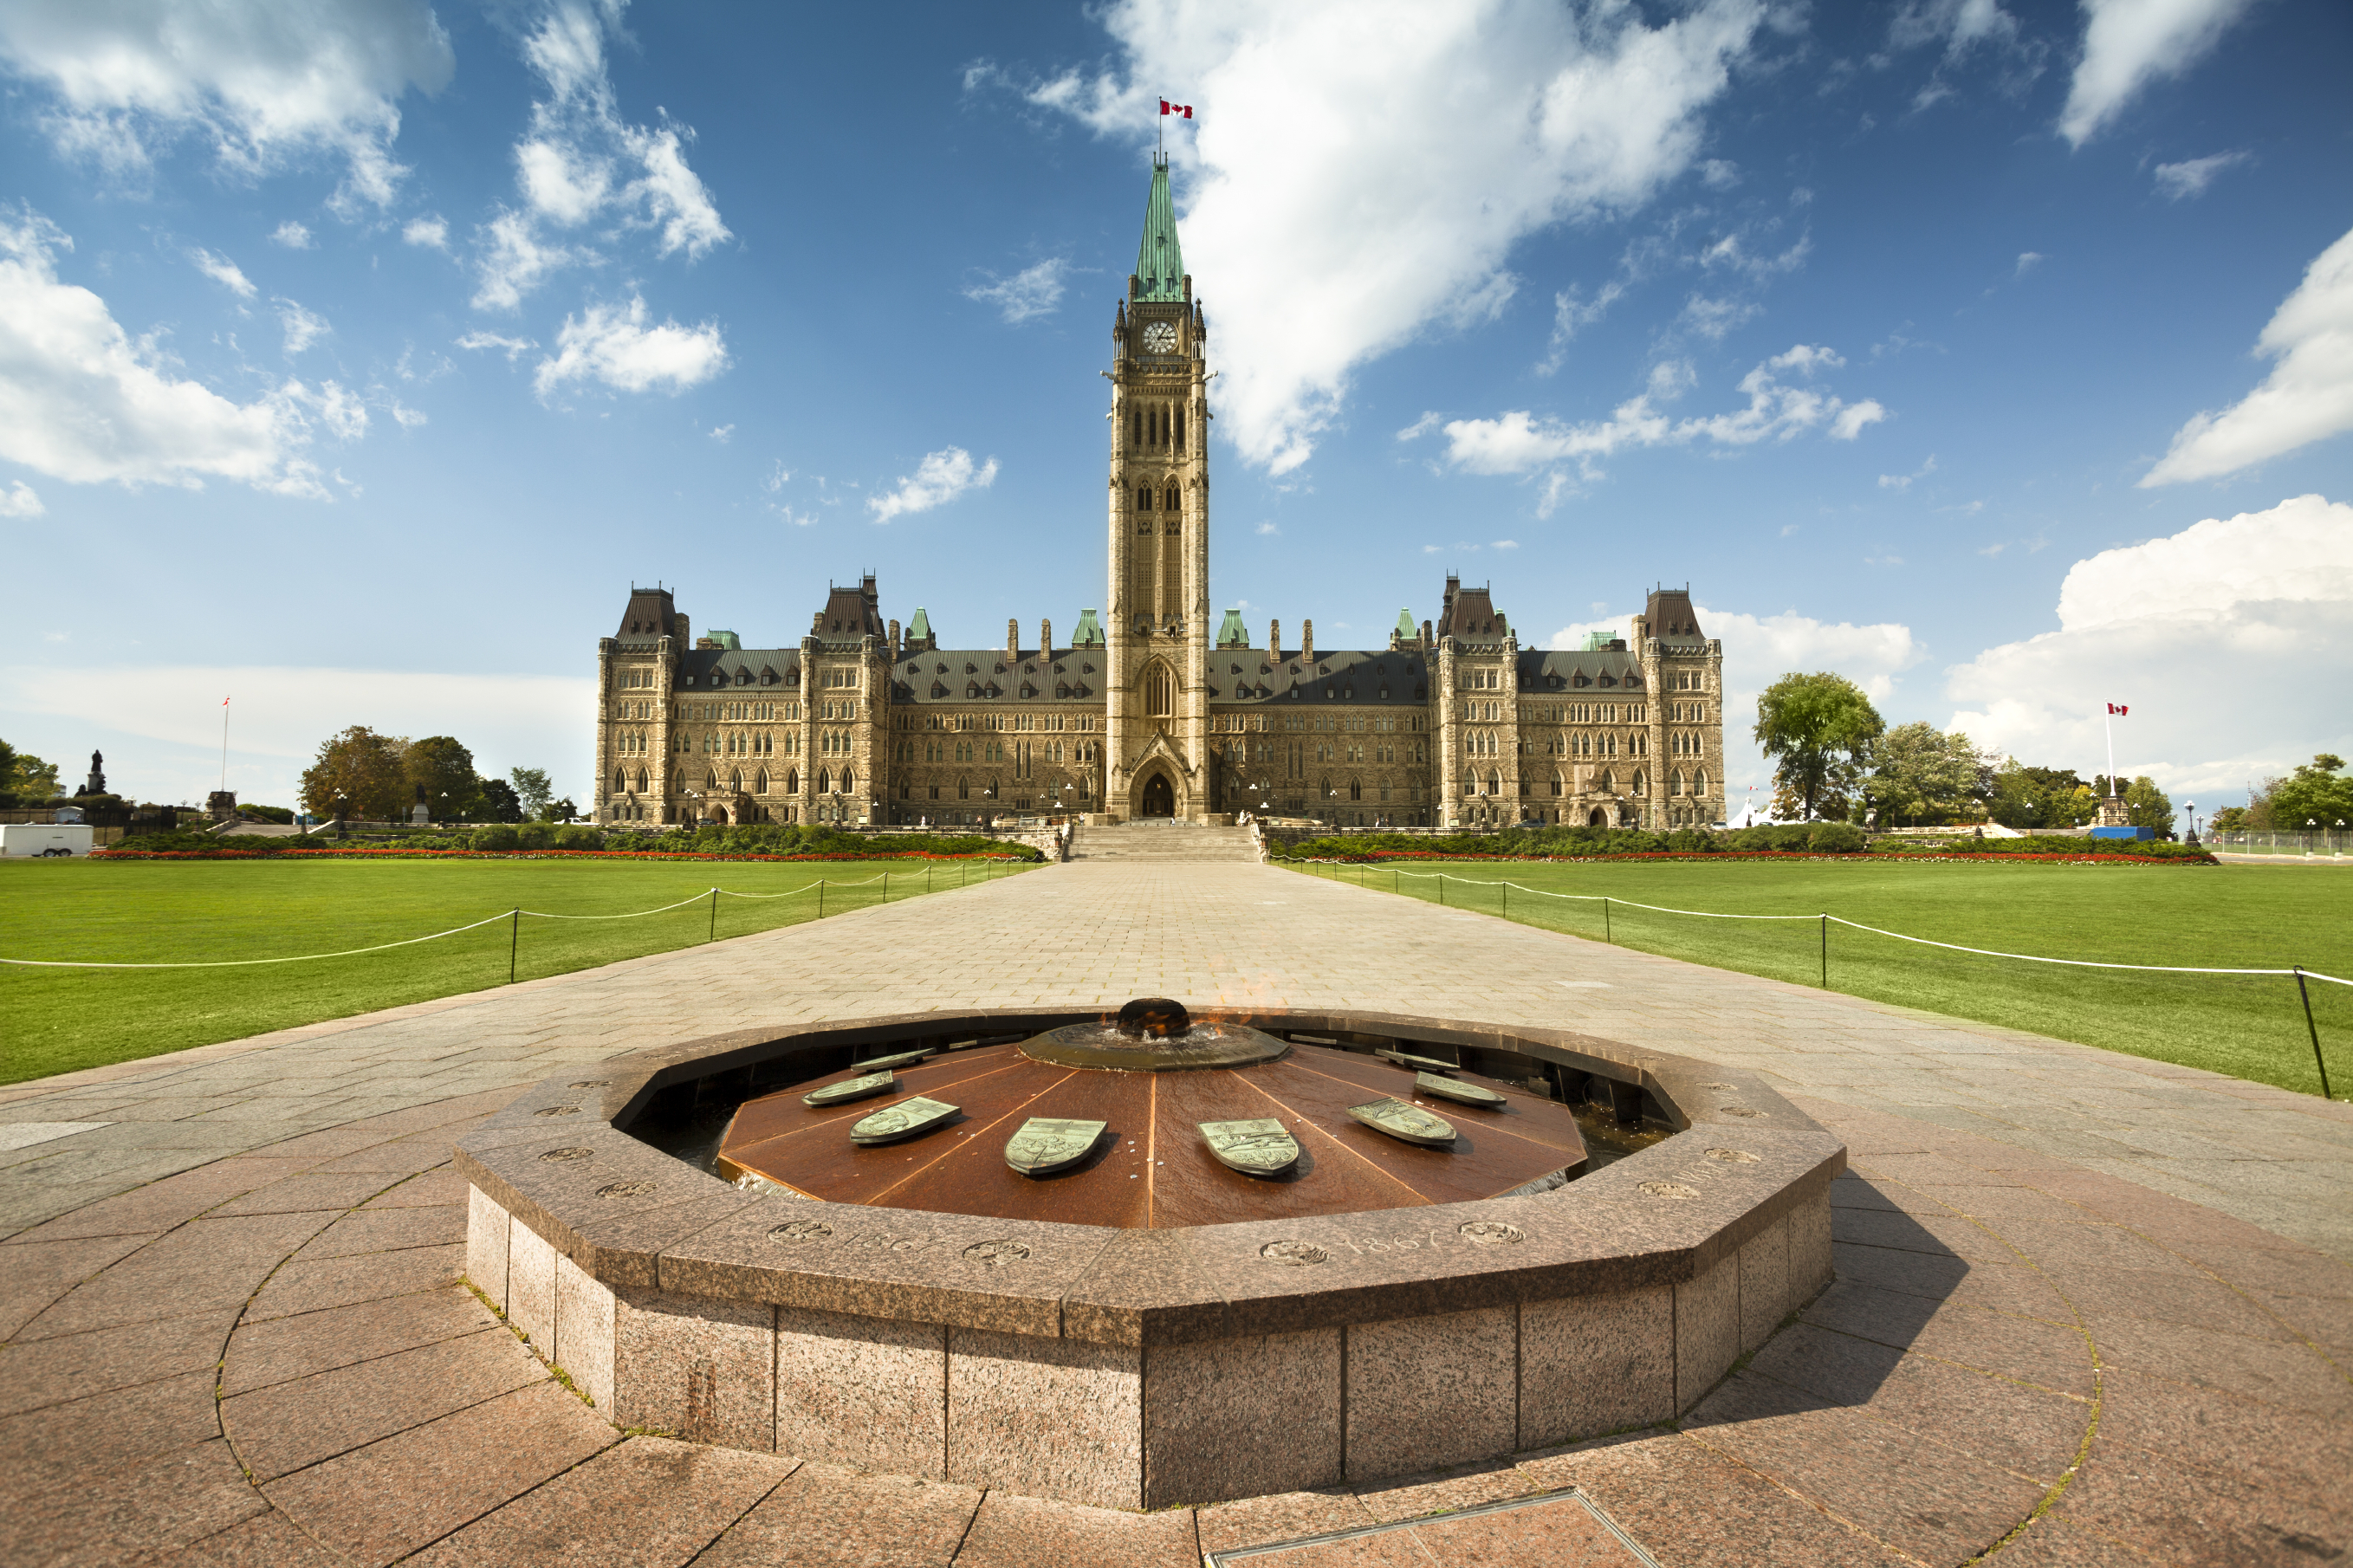 Parliament_and_Fountain.jpg